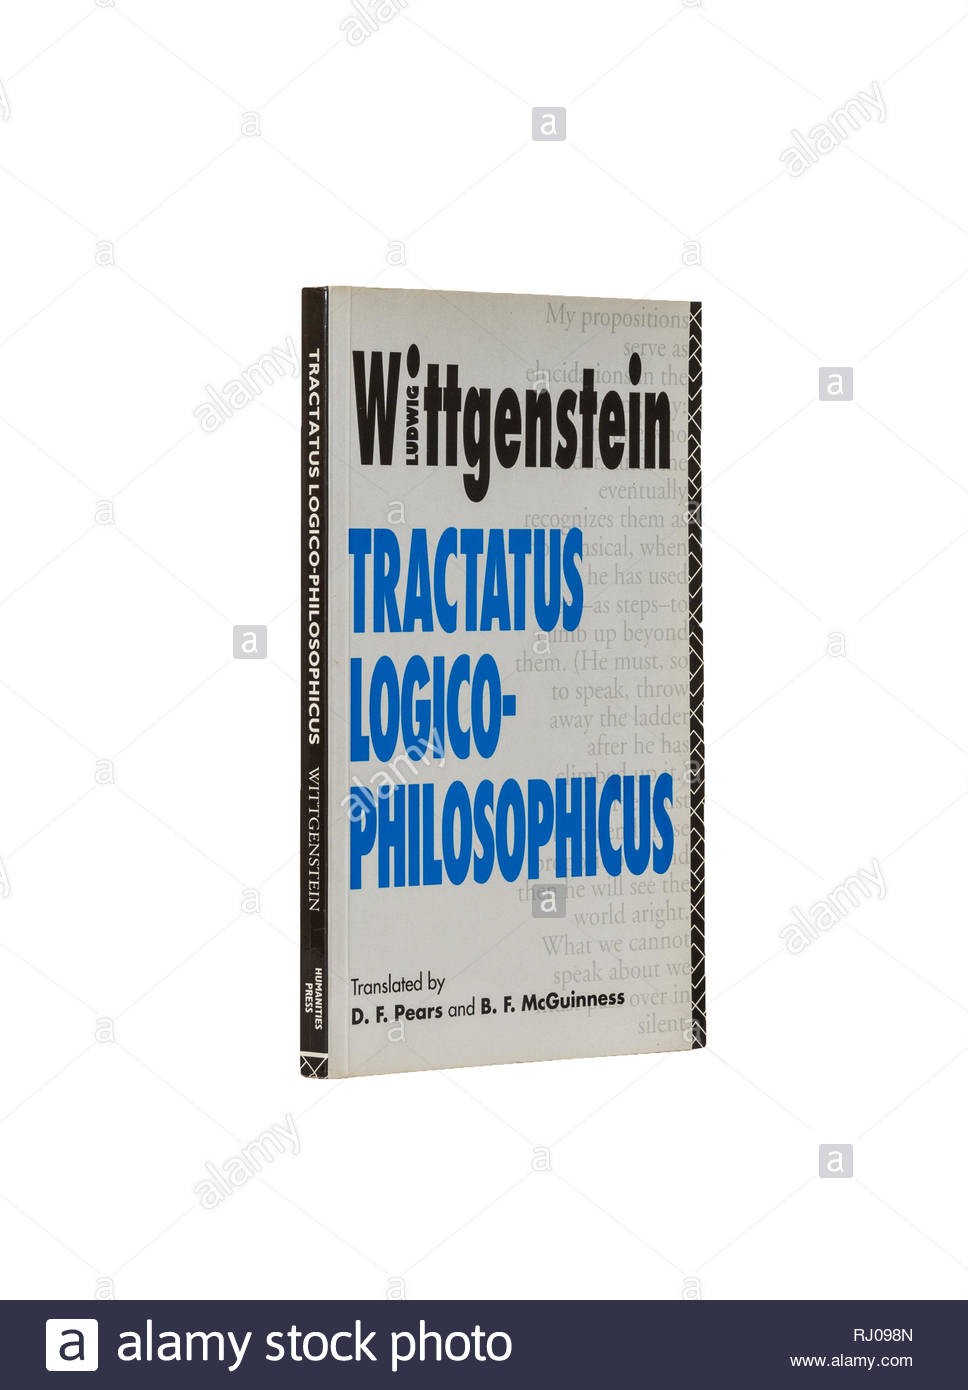 Book image: Ludwig Wittenstein's 'Tractatus Logico-philosophicus', translated by David Pears and B. F. McGuiness.  Isolated on pure white background. - Stock Image